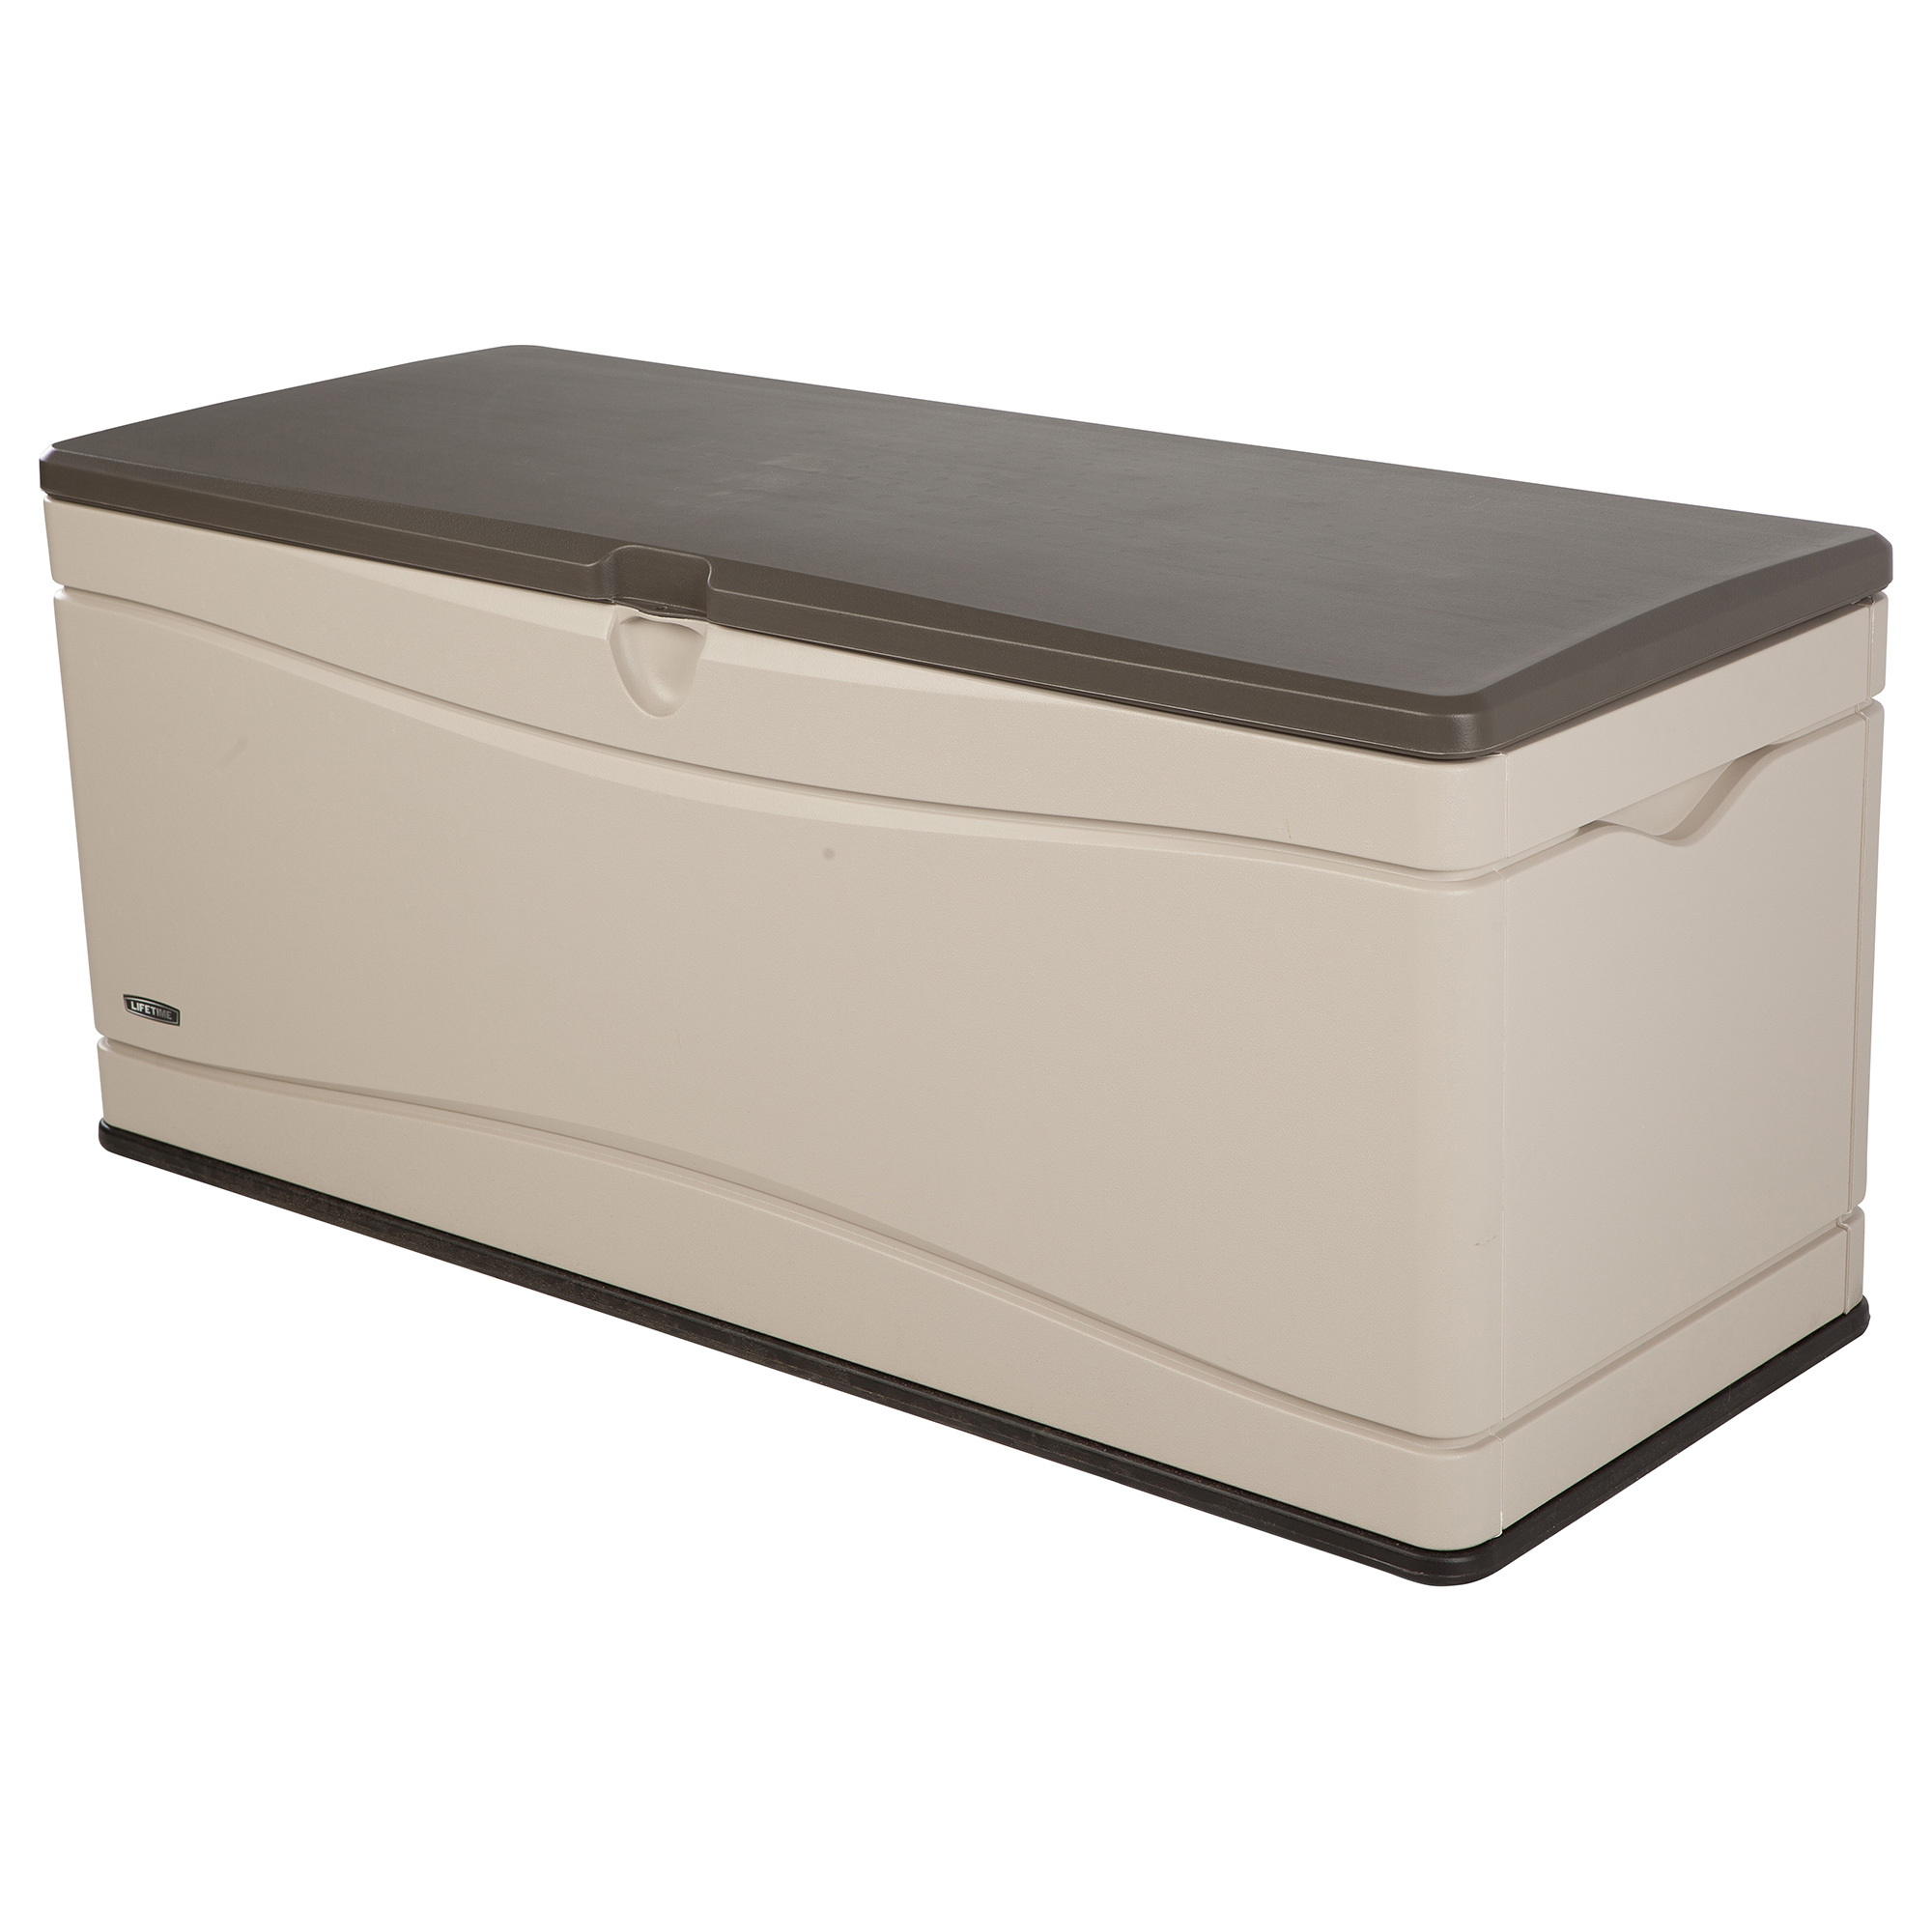 Lifetime Outdoor 130 Gallon Deck Storage Box 60012 Walmart in dimensions 2000 X 2000